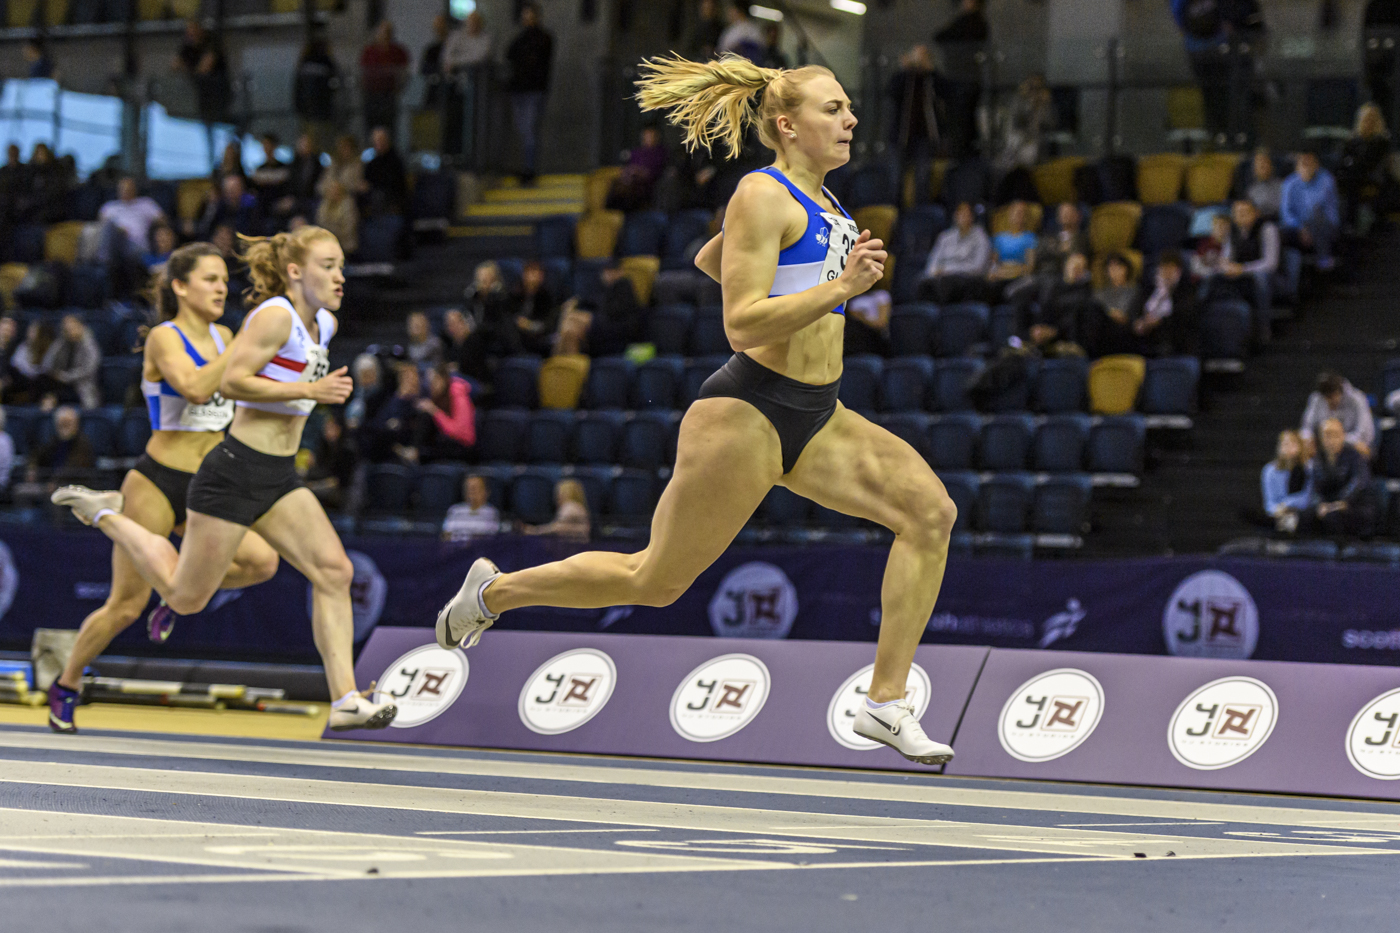 Alisha Rees wins the Scottish 60 metres title and sets a new national best time in Glasgow.